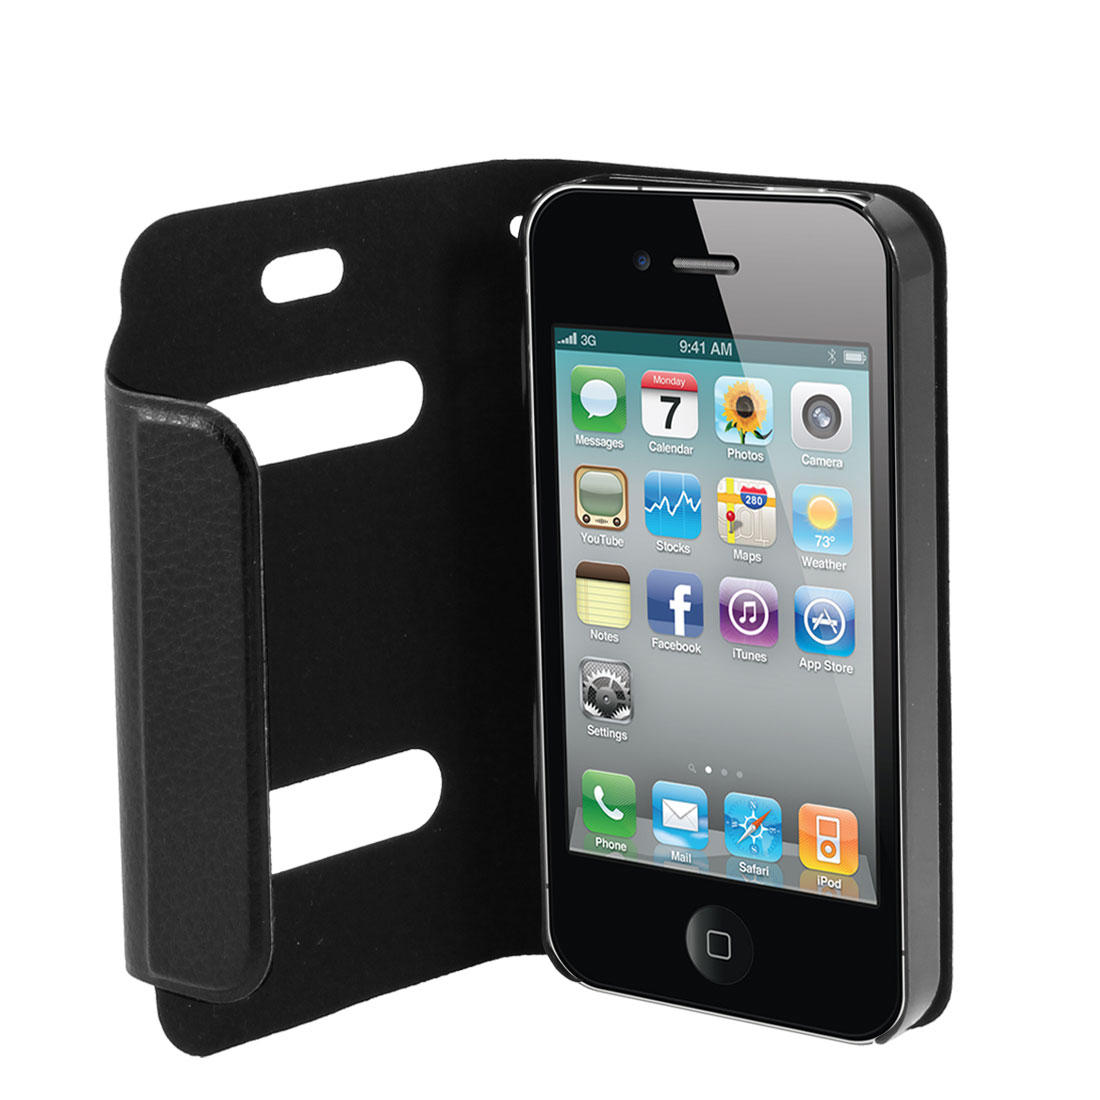 Black PU Leather Magnet Flip Folio Case Cover for Apple iPhone 4 4G 4S 4GS